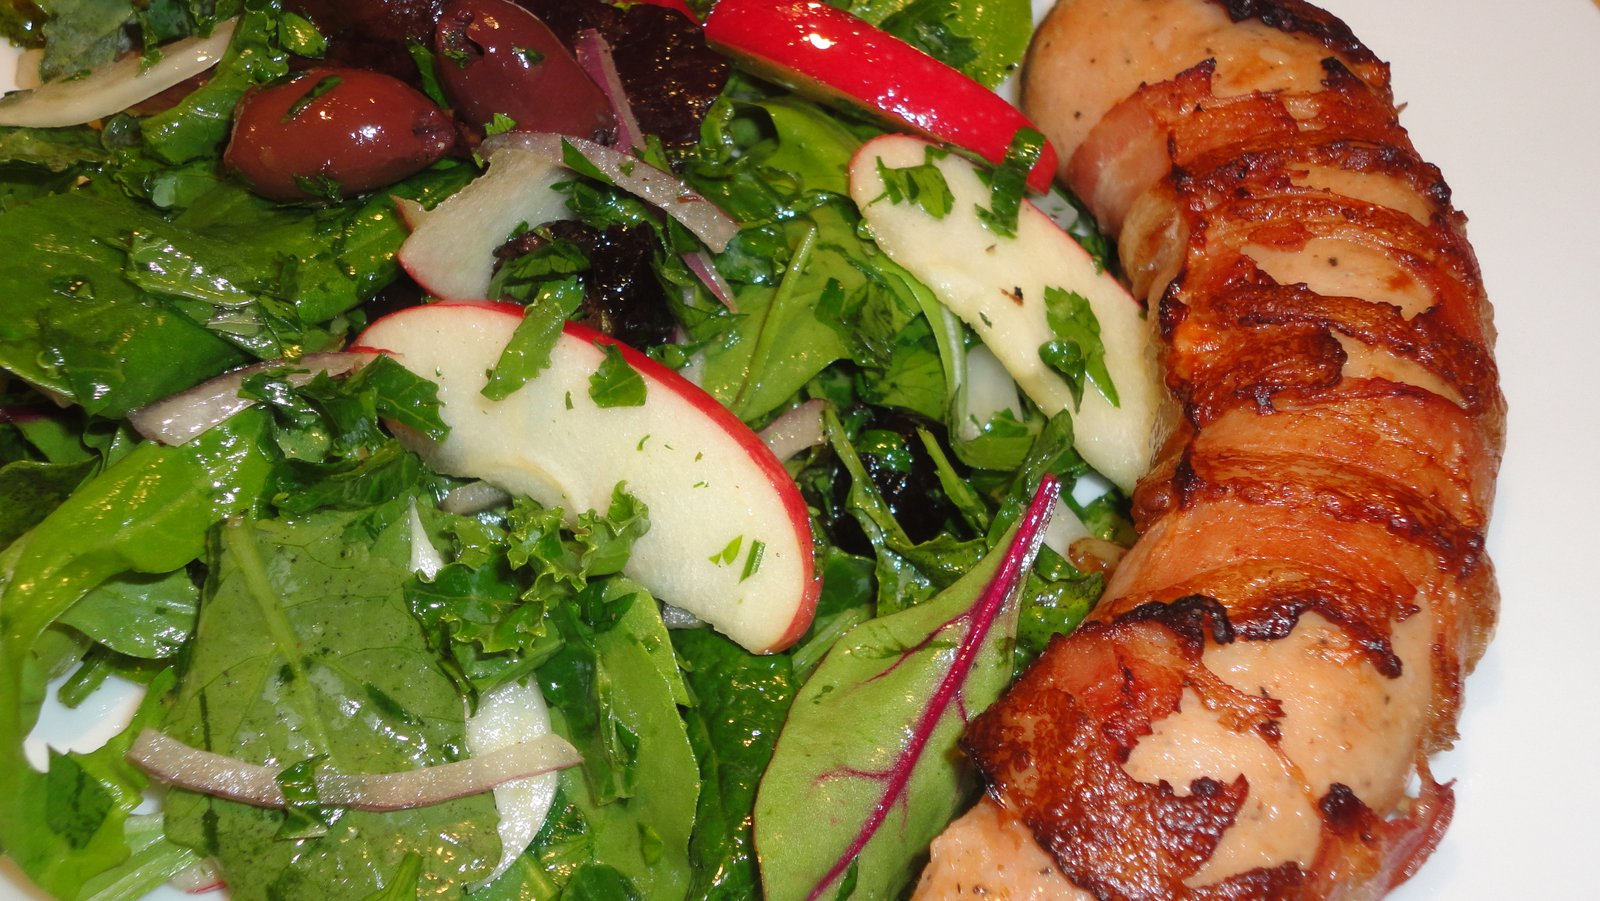 Recipe #3 | Bacon Wrapped Chicken Sausage With Apple Kale Salad